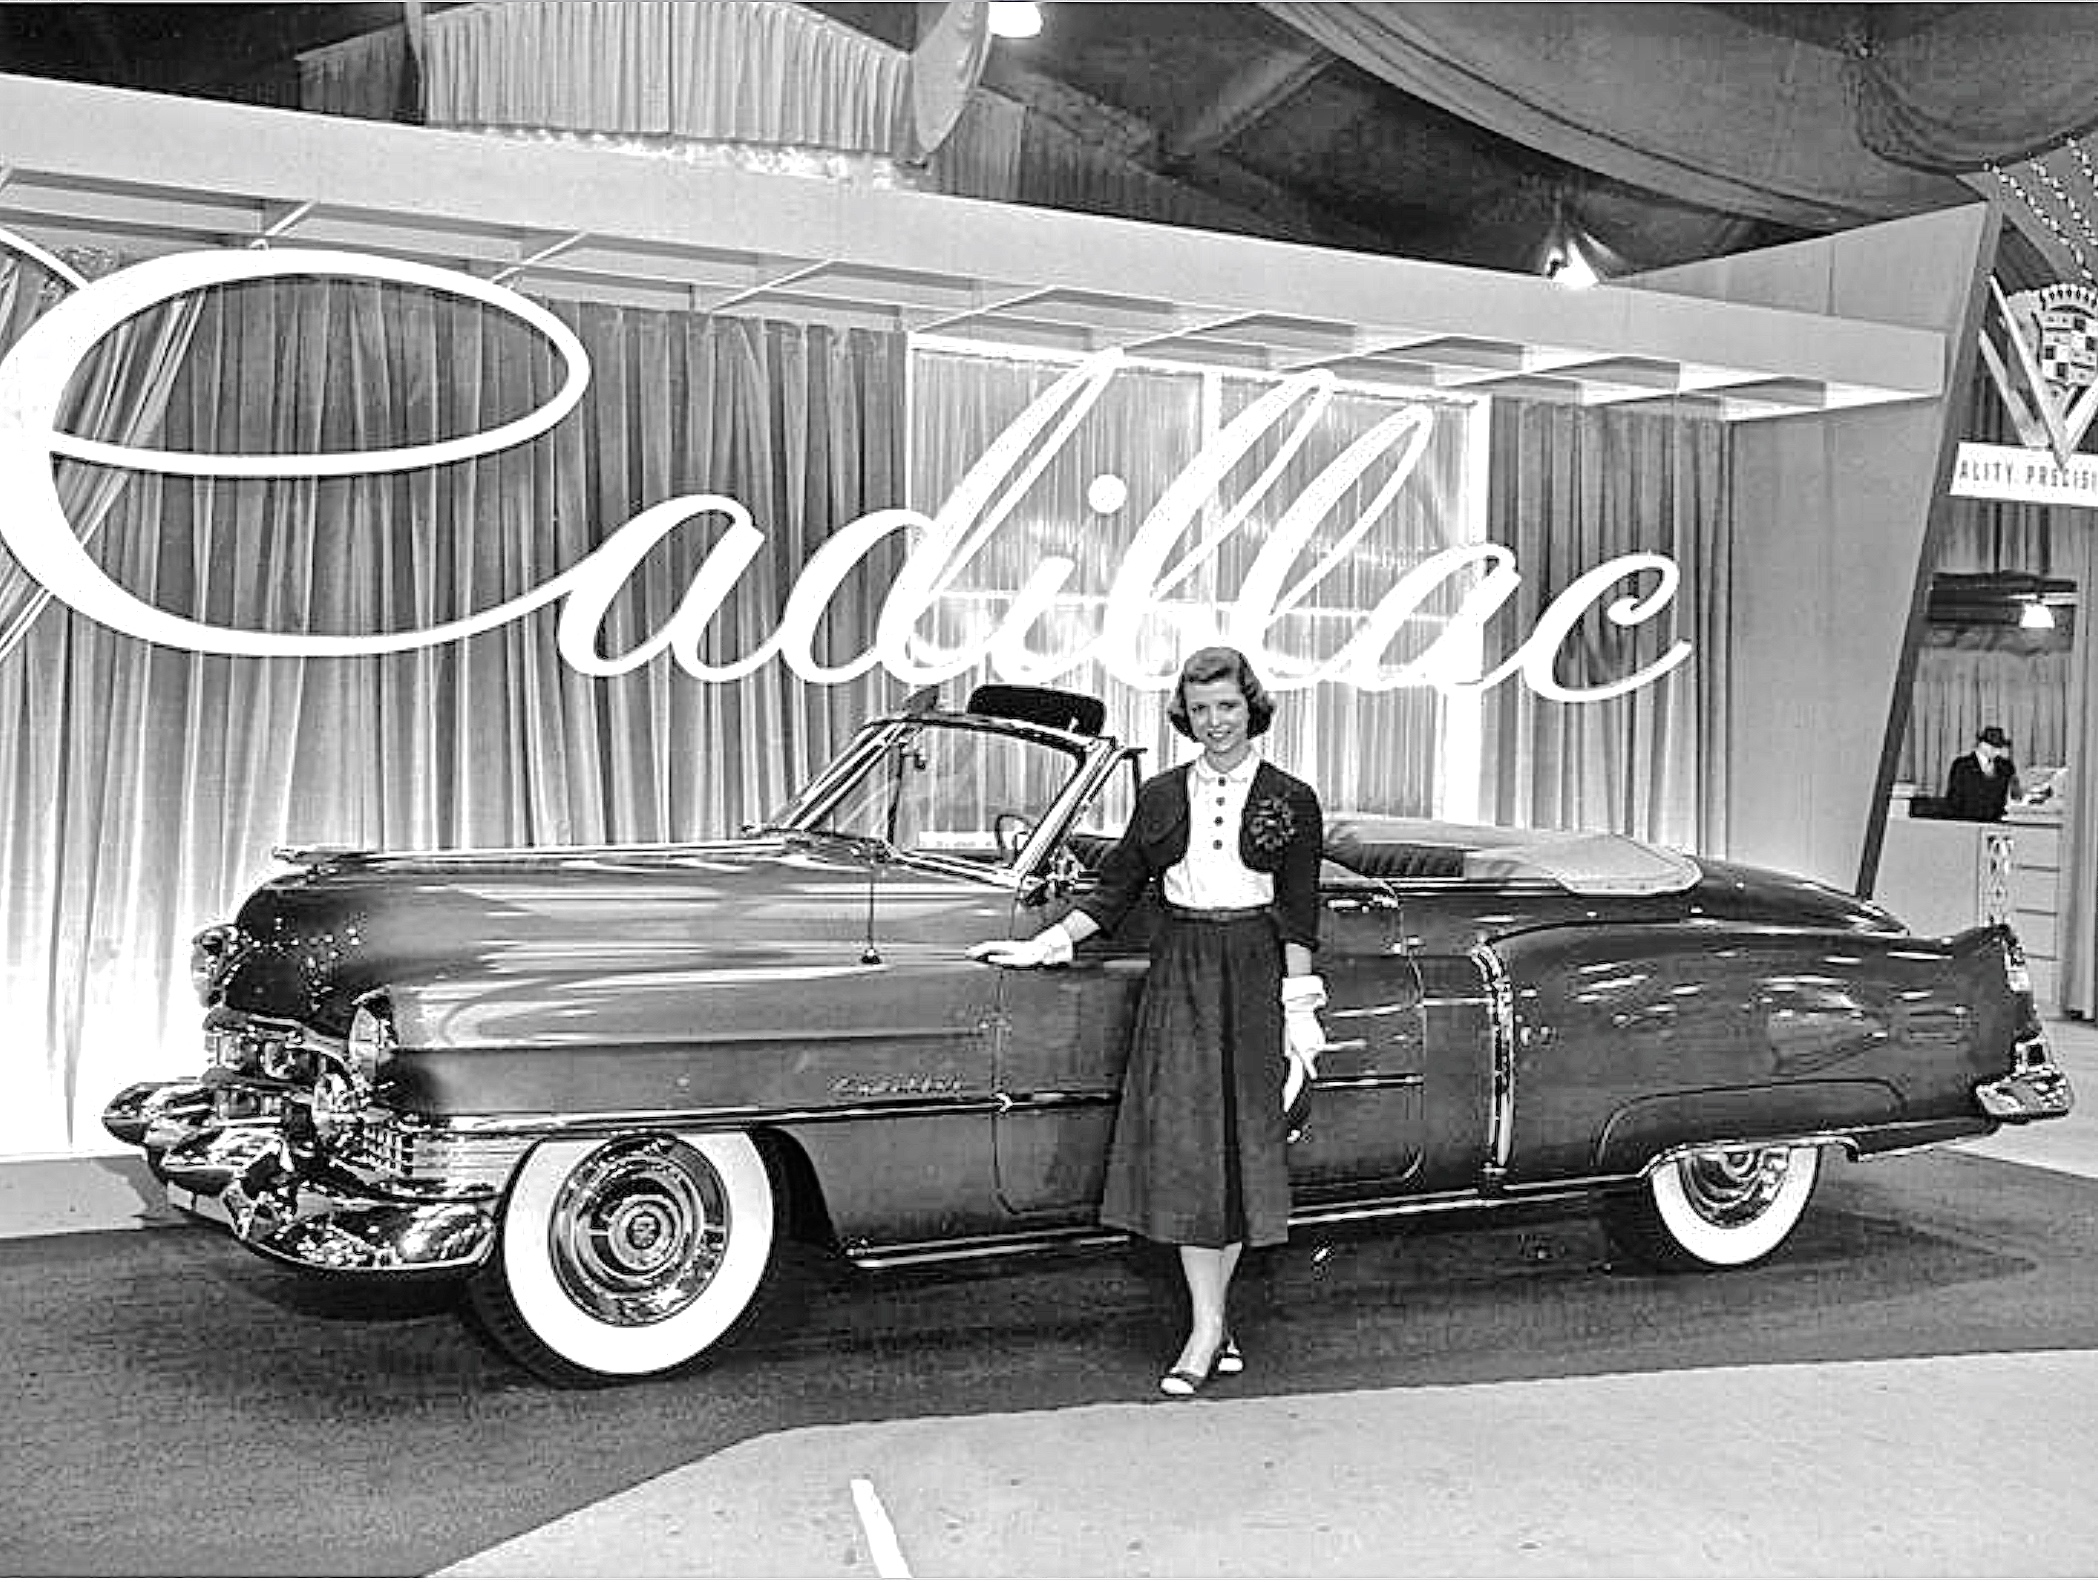 Cadillac Atx Car Pictures Real Pics From Austin Tx Streets 1951 Fleetwood Sedan Series 62 Convertible On Lift In Sw